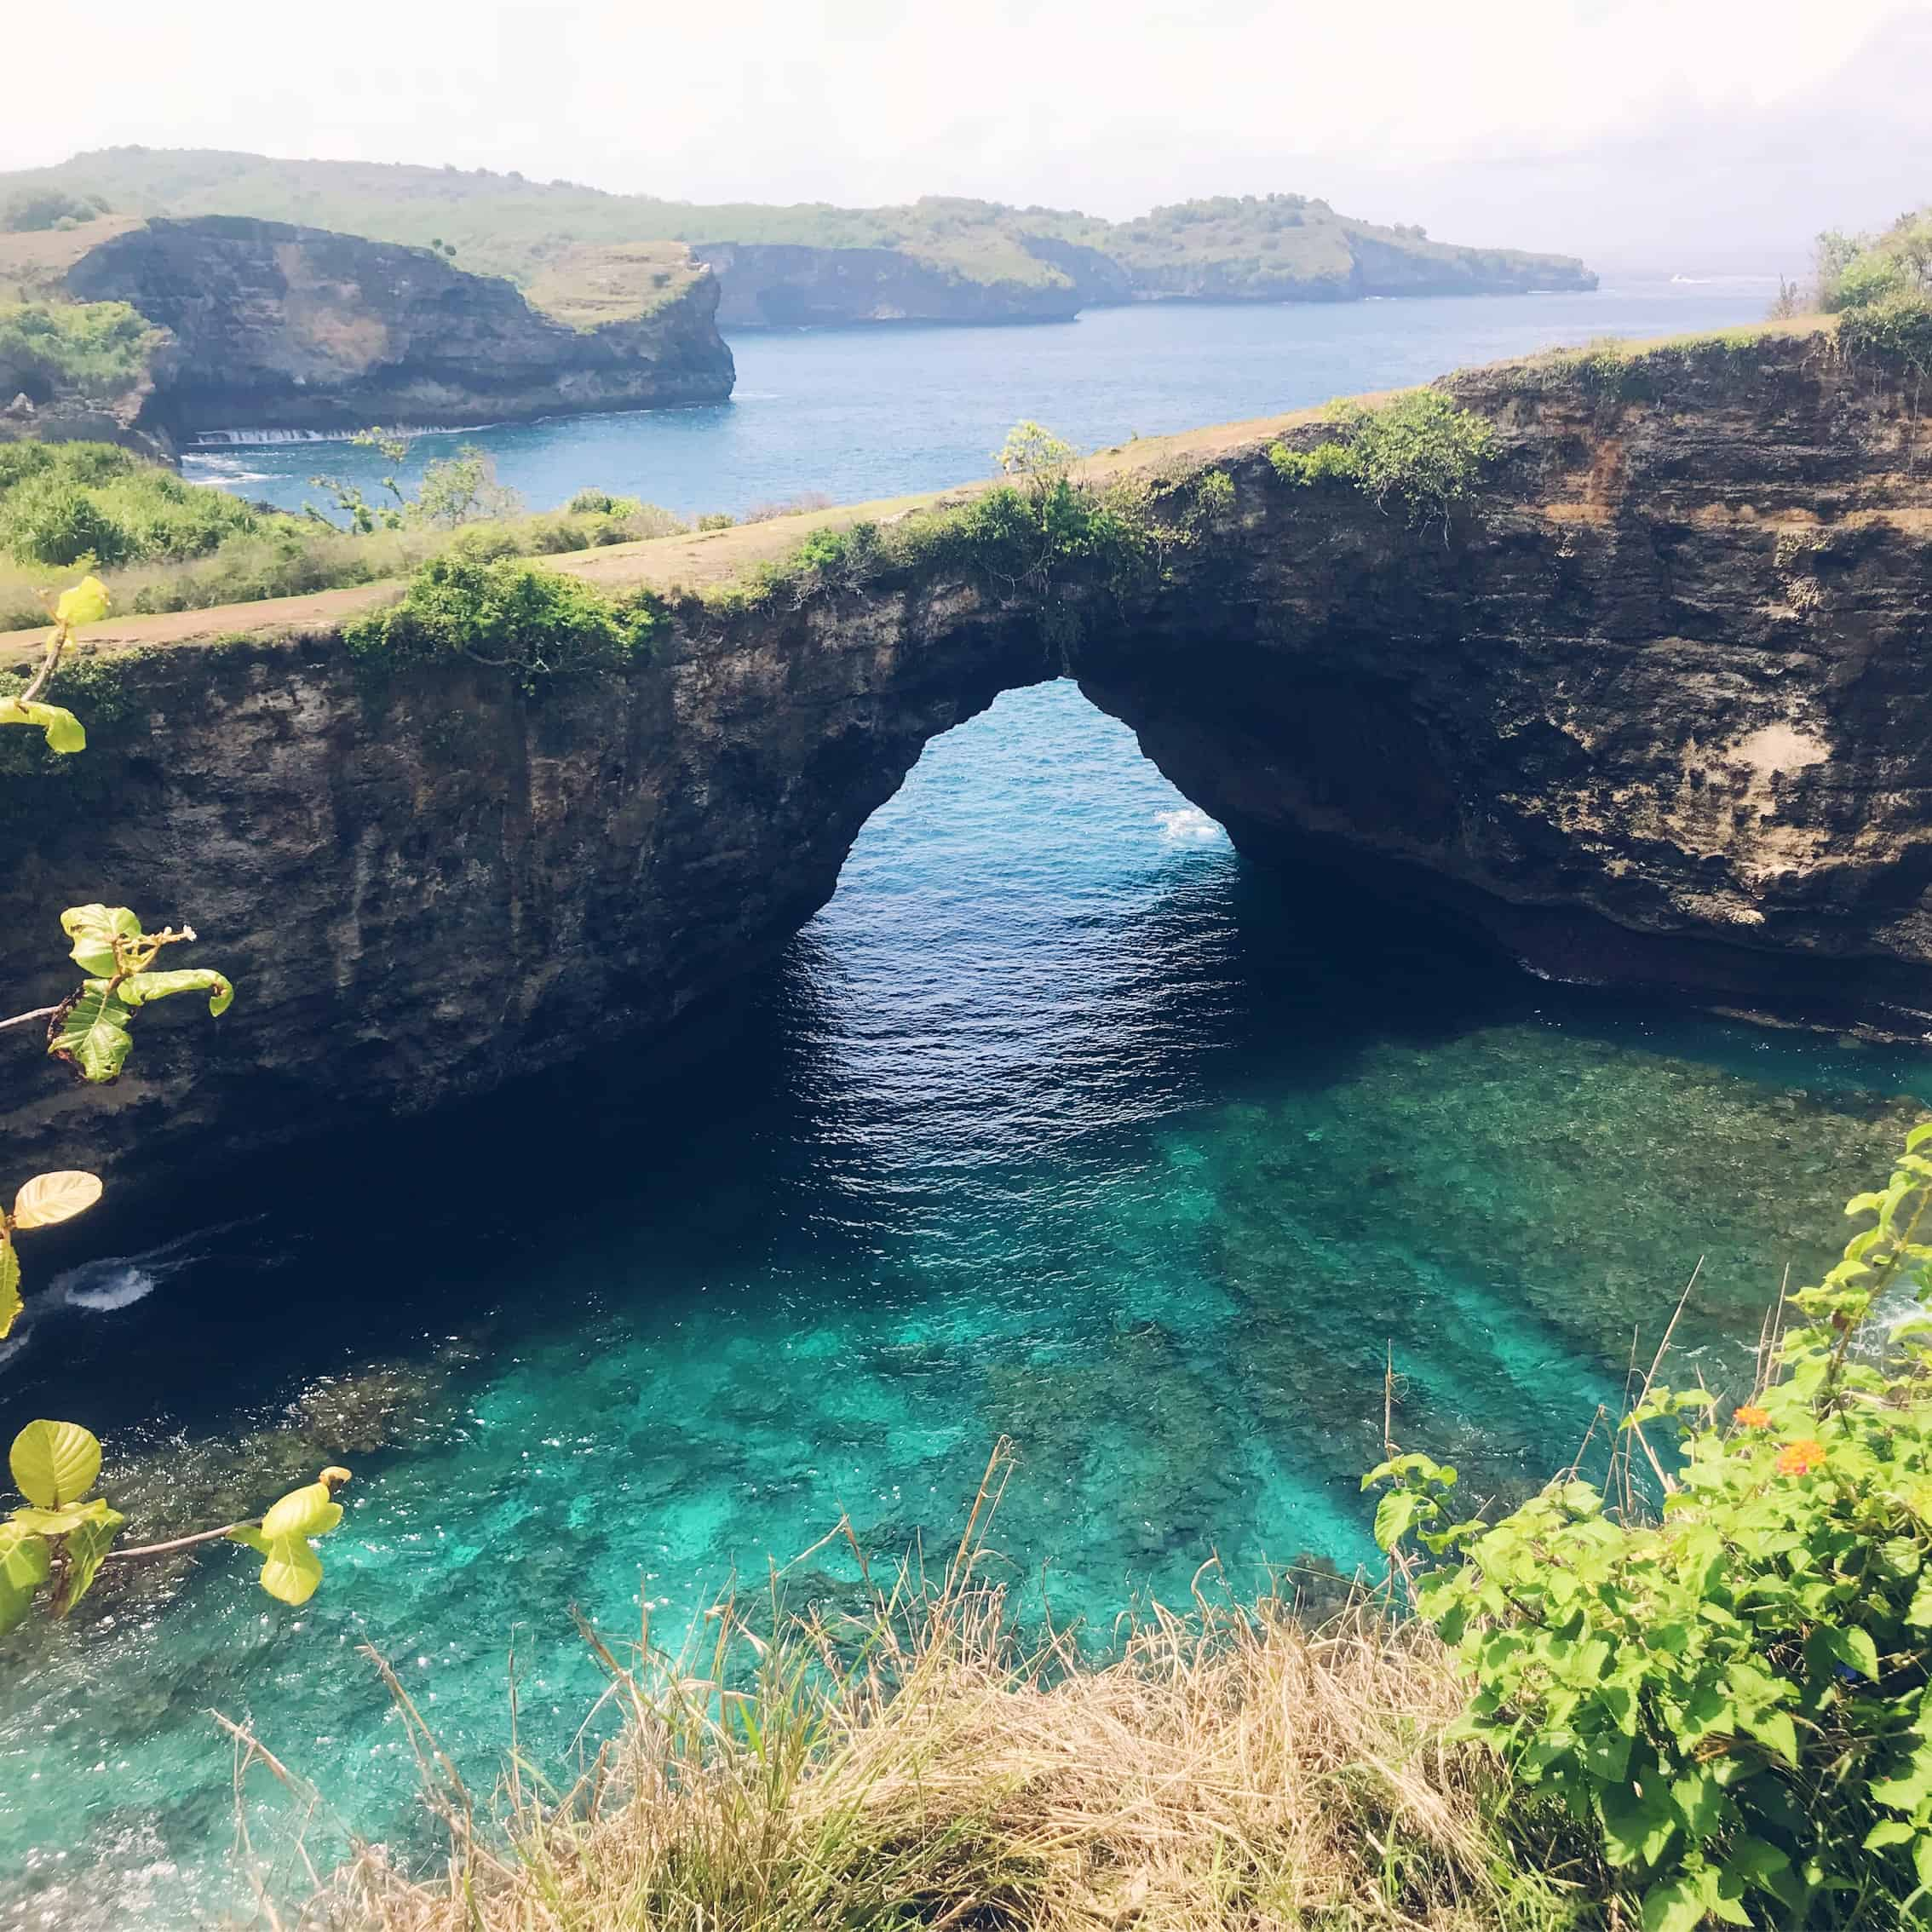 Nusa Penida 5 Minute Essential Guide Adventure Travel Family